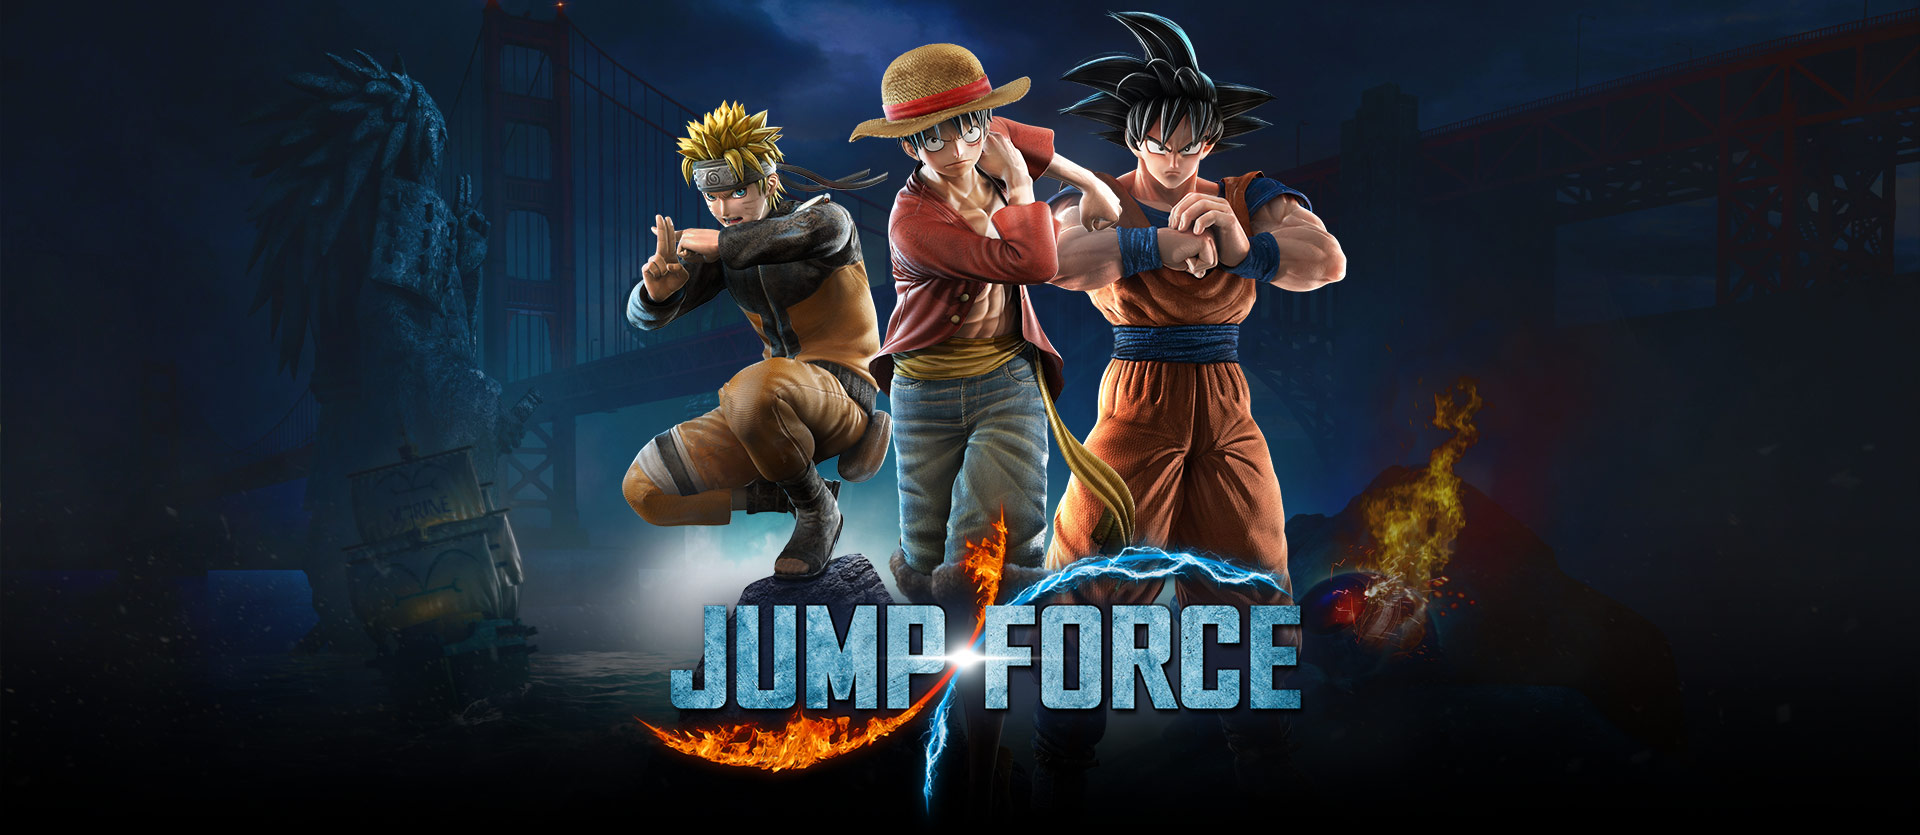 Jotaro Kujo and Dio Join Jump Force